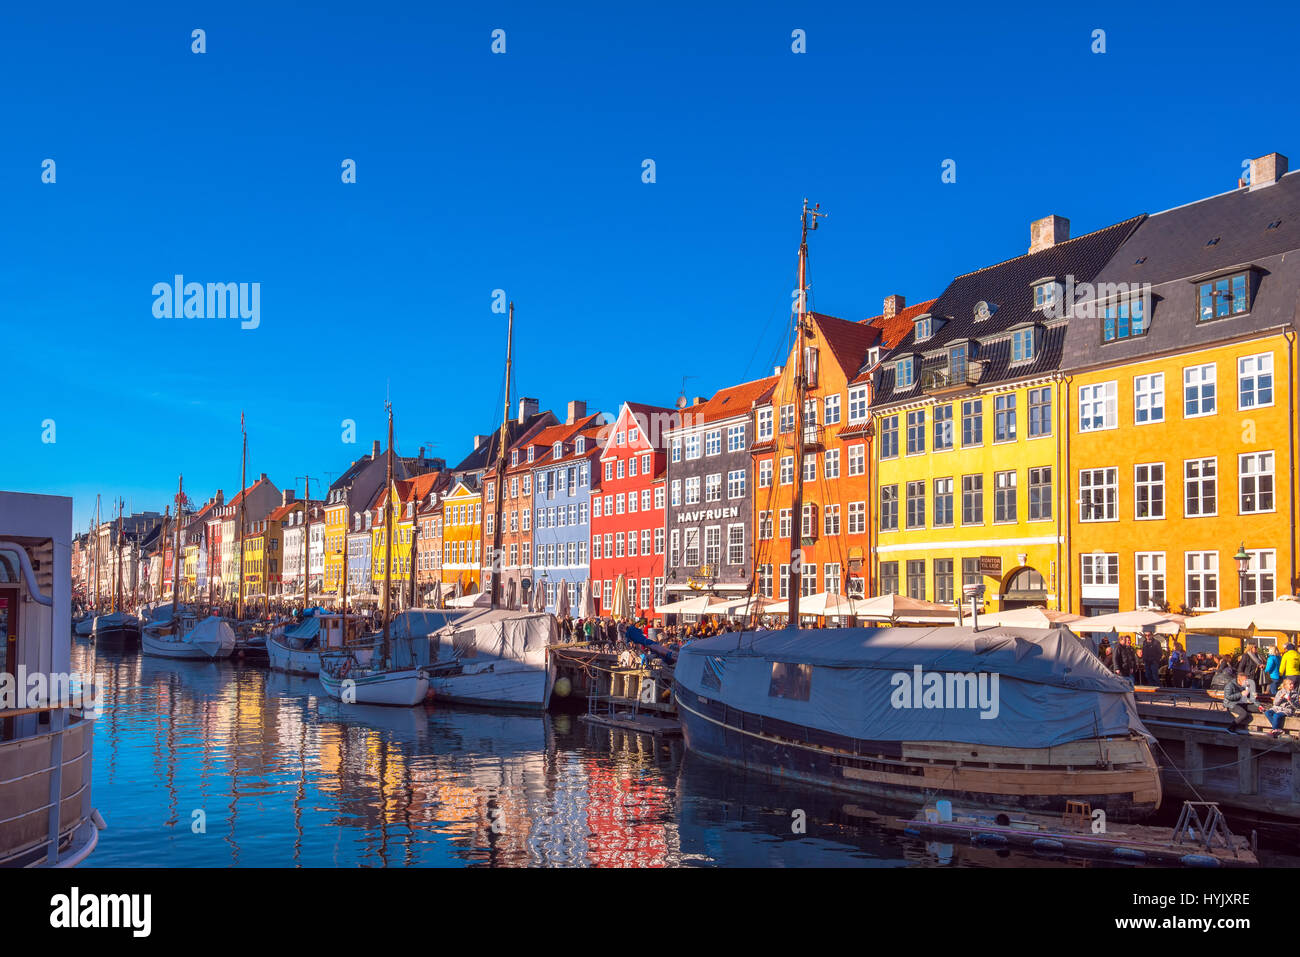 COPENHAGEN, DENMARK - MARCH 11, 2017: Copenhagen Nyhavn canal and promenade with its colorful facades, 17th century - Stock Image